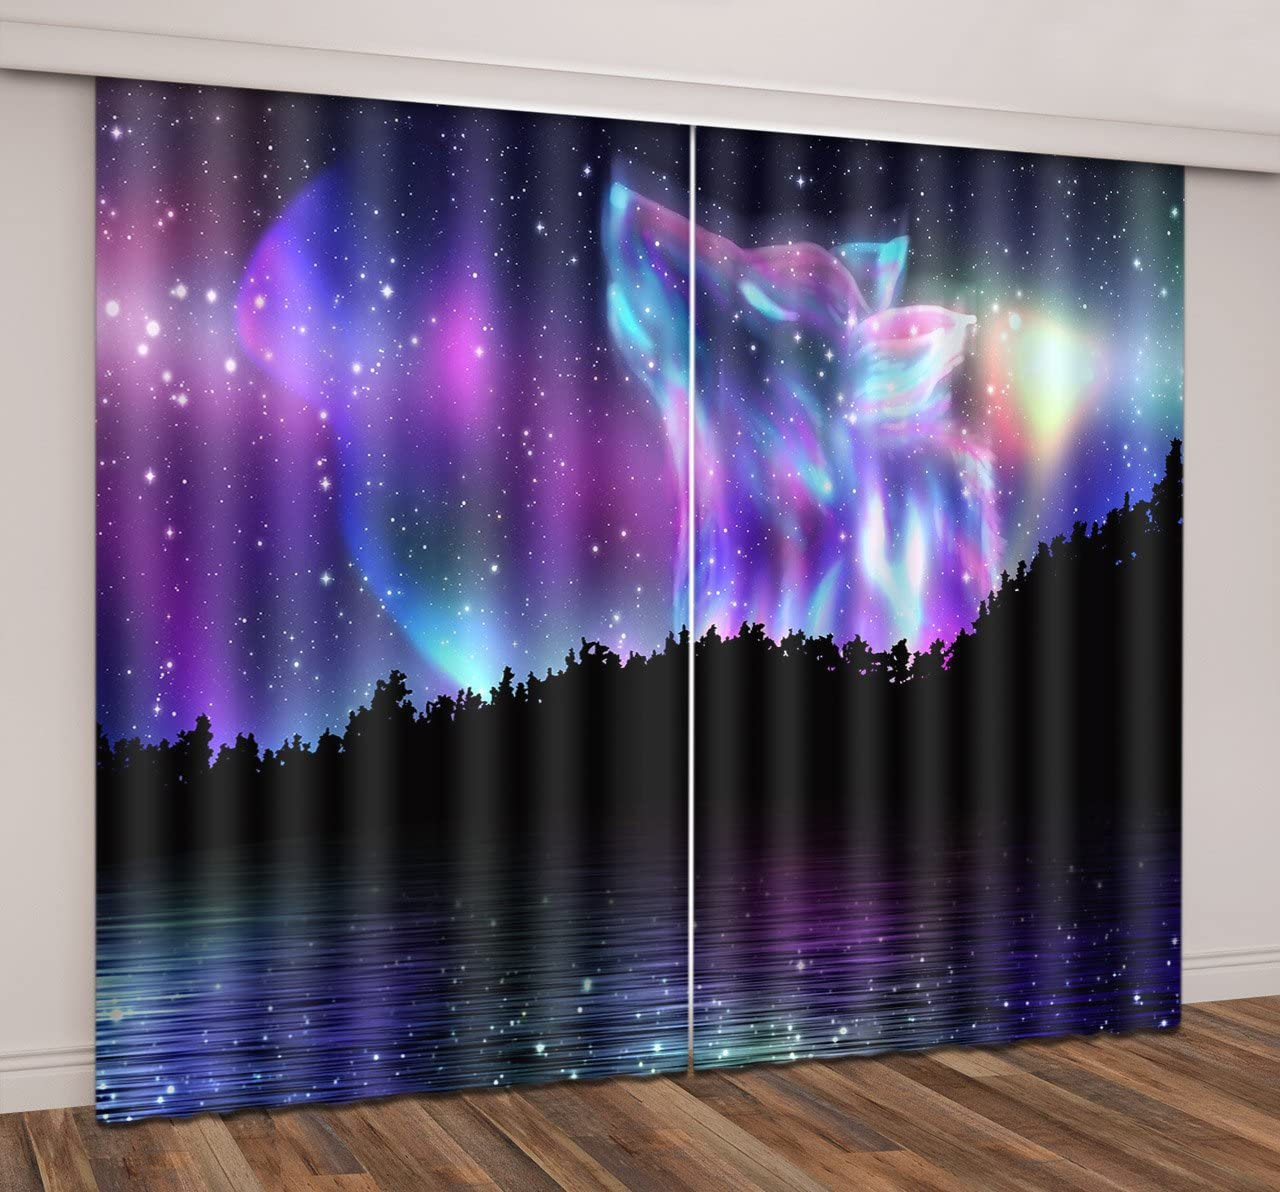 LB Teen Kids Wolf Decor Room Darkening Blackout Curtains,Wolf Pattern in The Starry Sky 3D Window Curtains Drapes for Living Room Bedroom 2 Panels Set,42 x 63 Inches